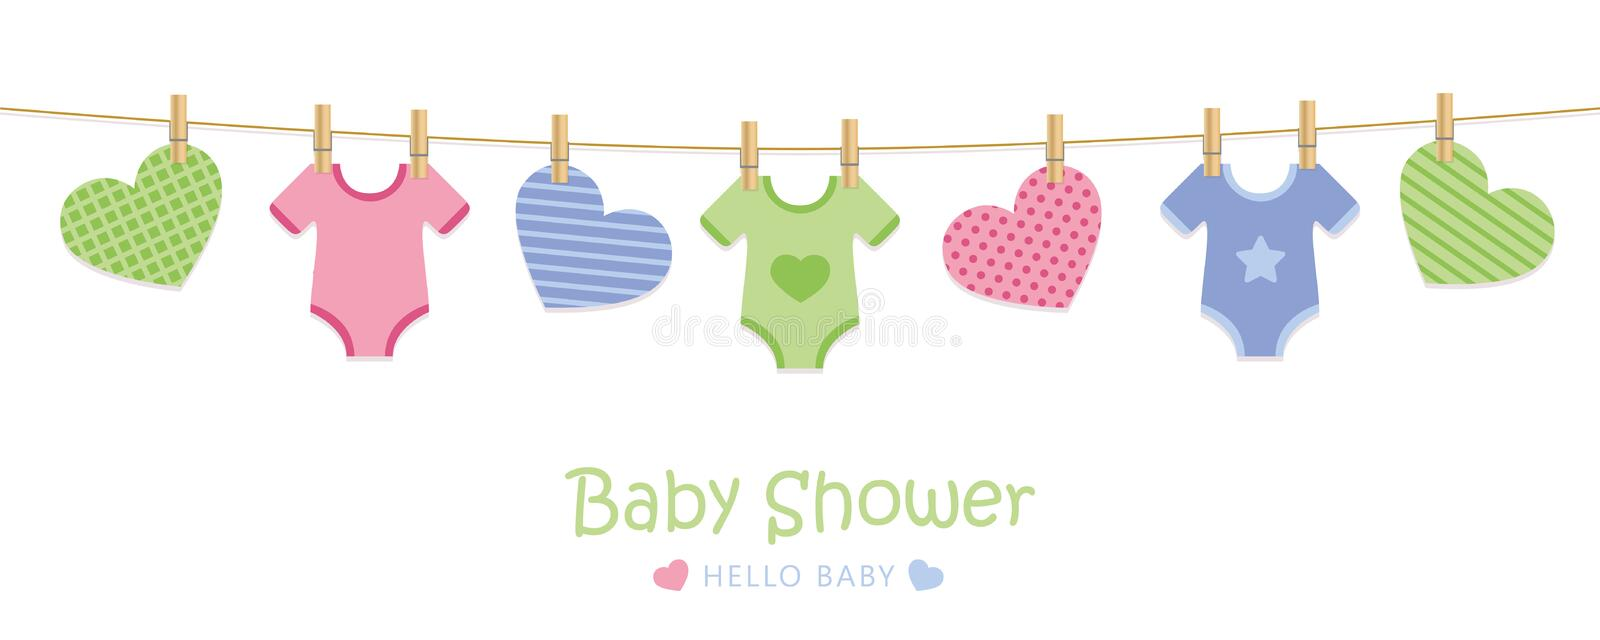 Baby shower welcome greeting card for childbirth with hanging hearts and bodysuits. Vector illustration EPS10 vector illustration